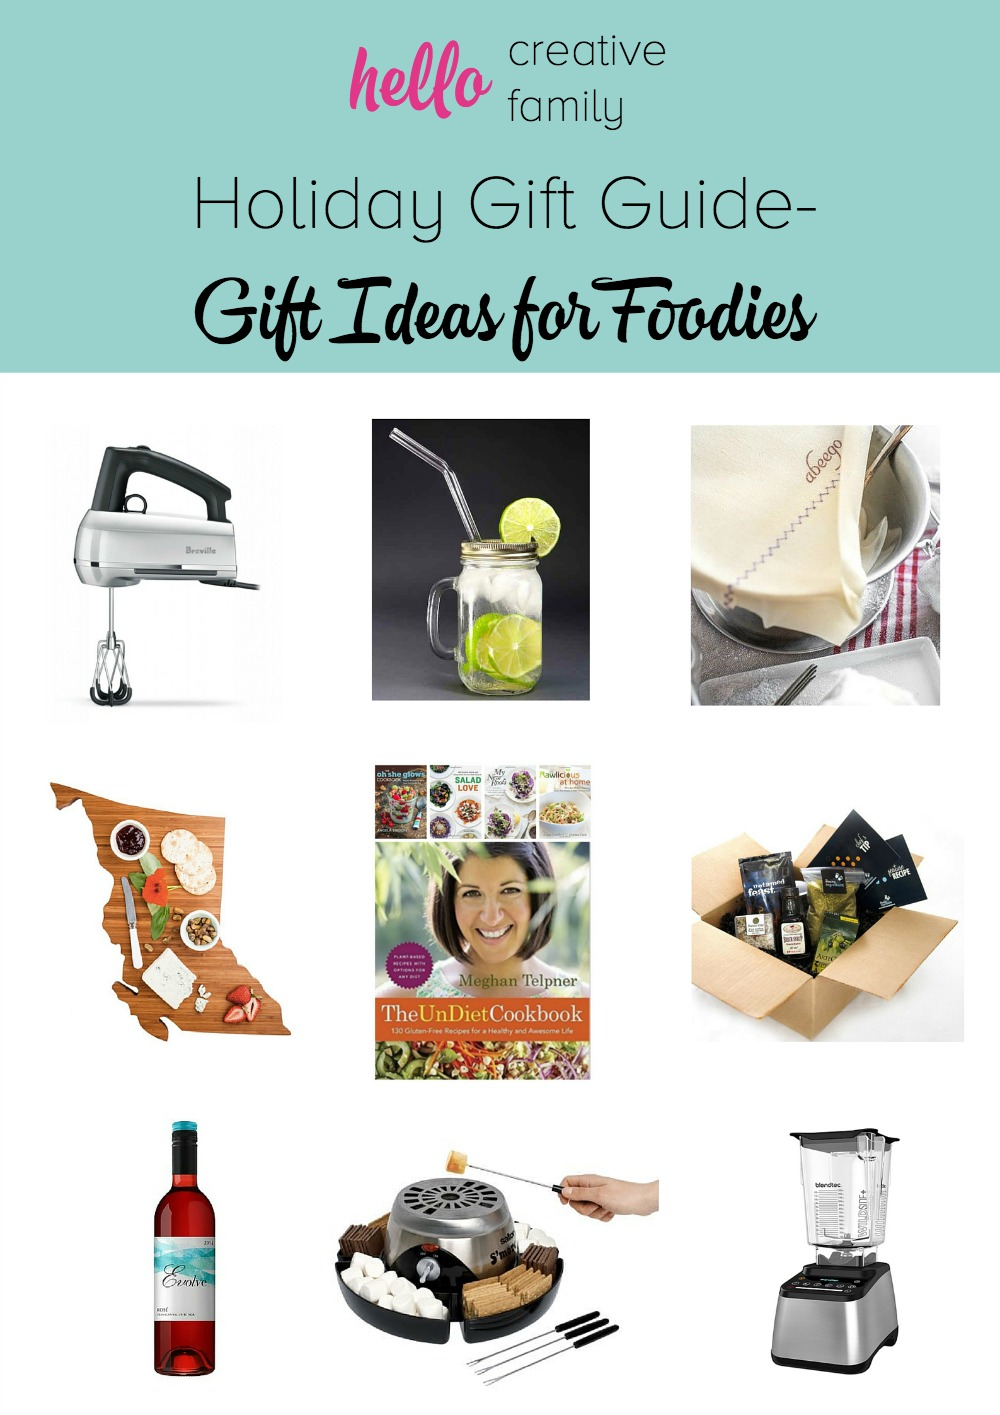 Holiday Gift Guide Holiday Gift Ideas For Foodies With Giveaways Hello Creative Family